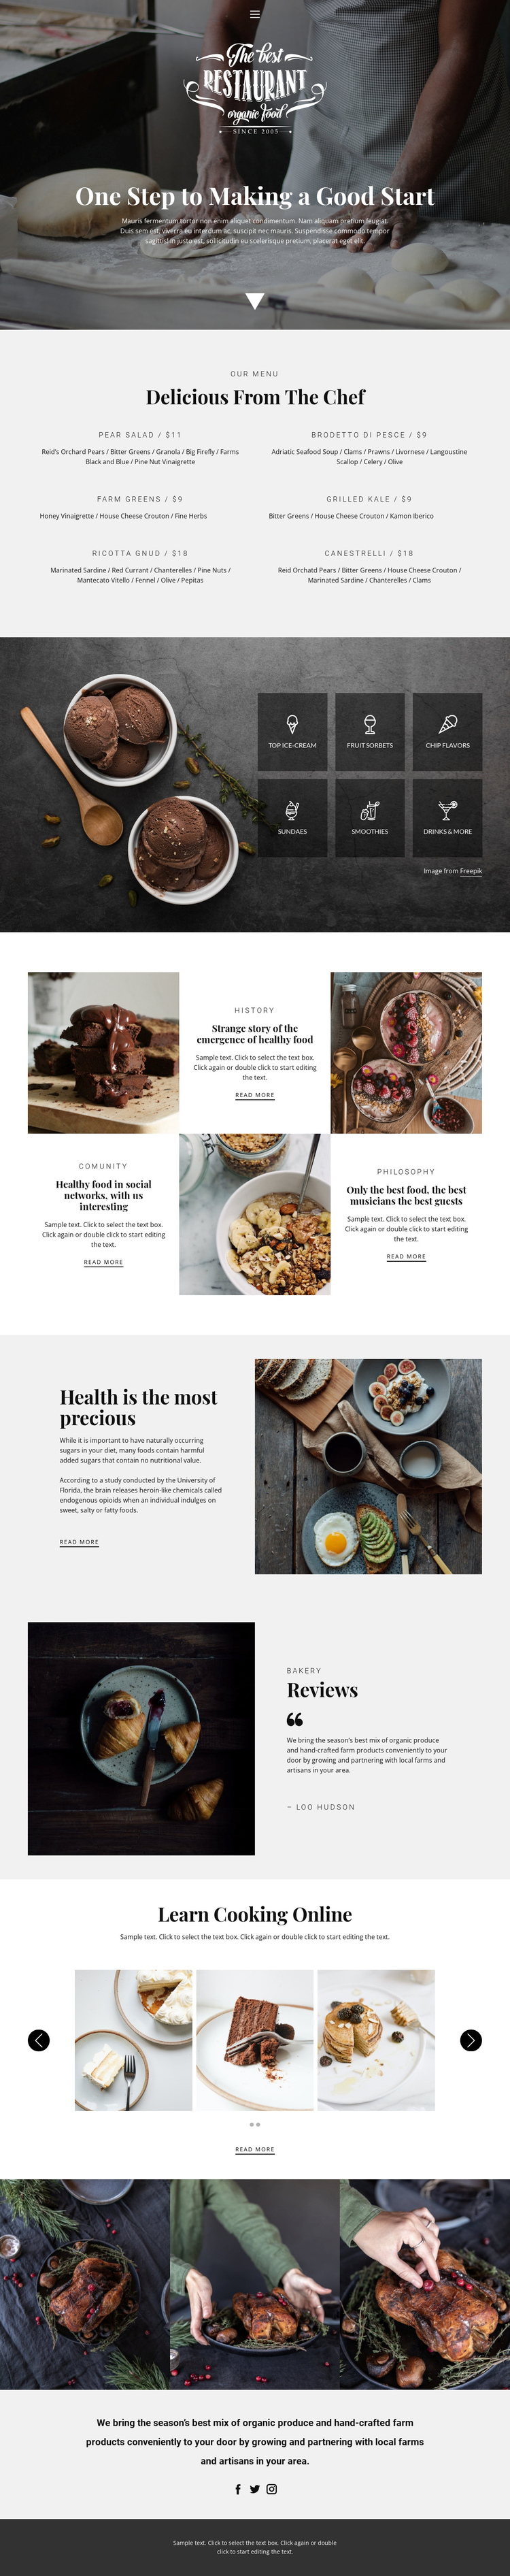 Recipes and cook lessons Website Builder Software